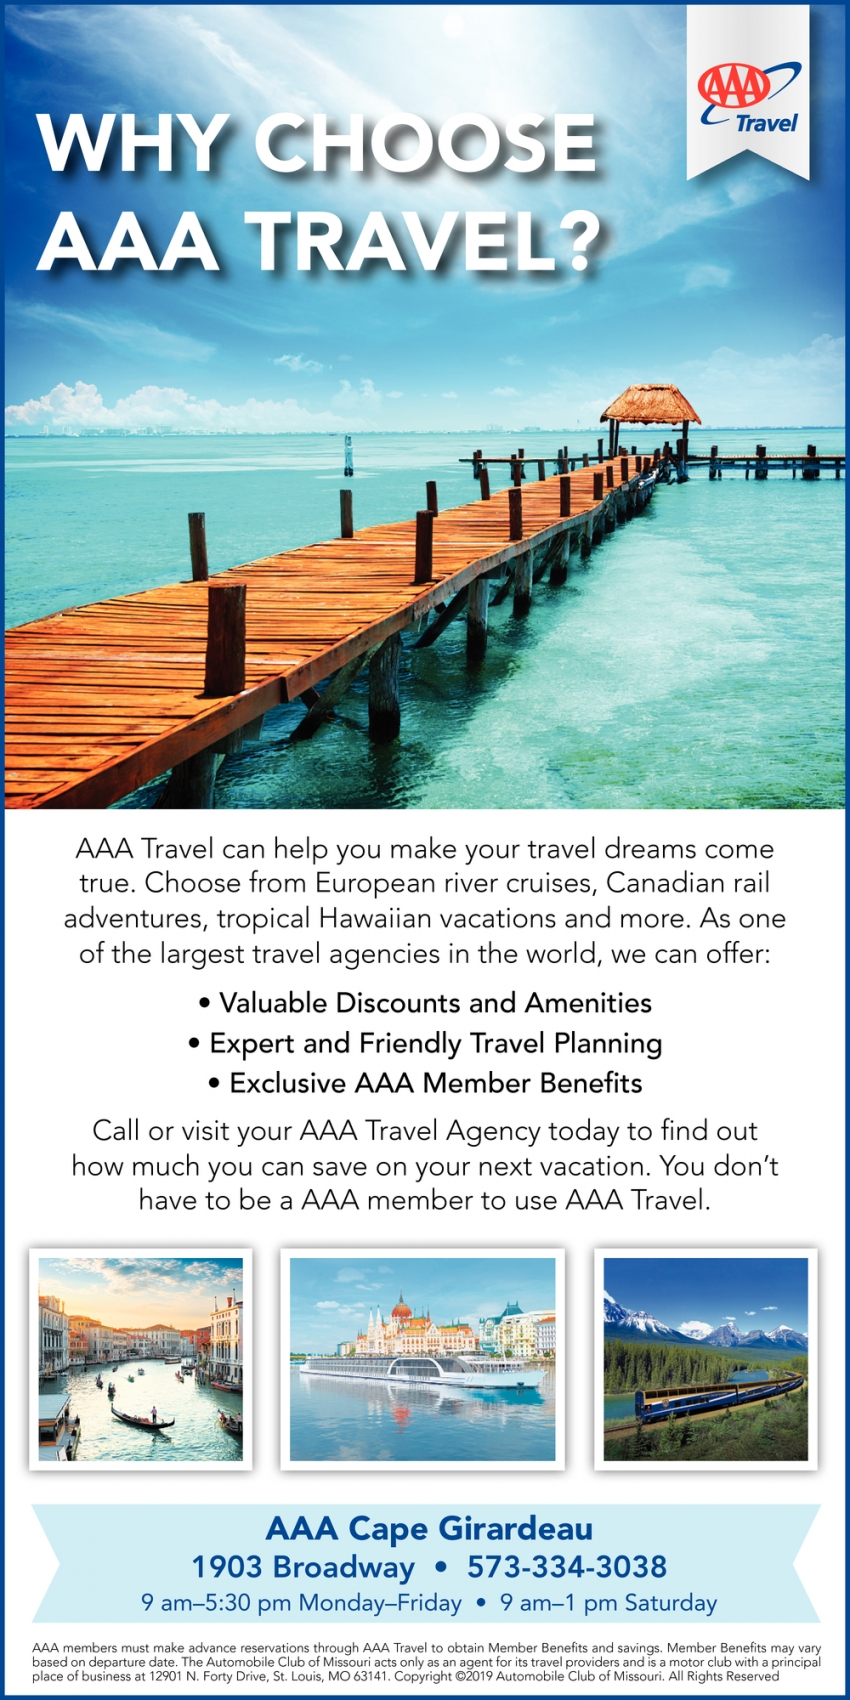 Why Choose AAA Travel?